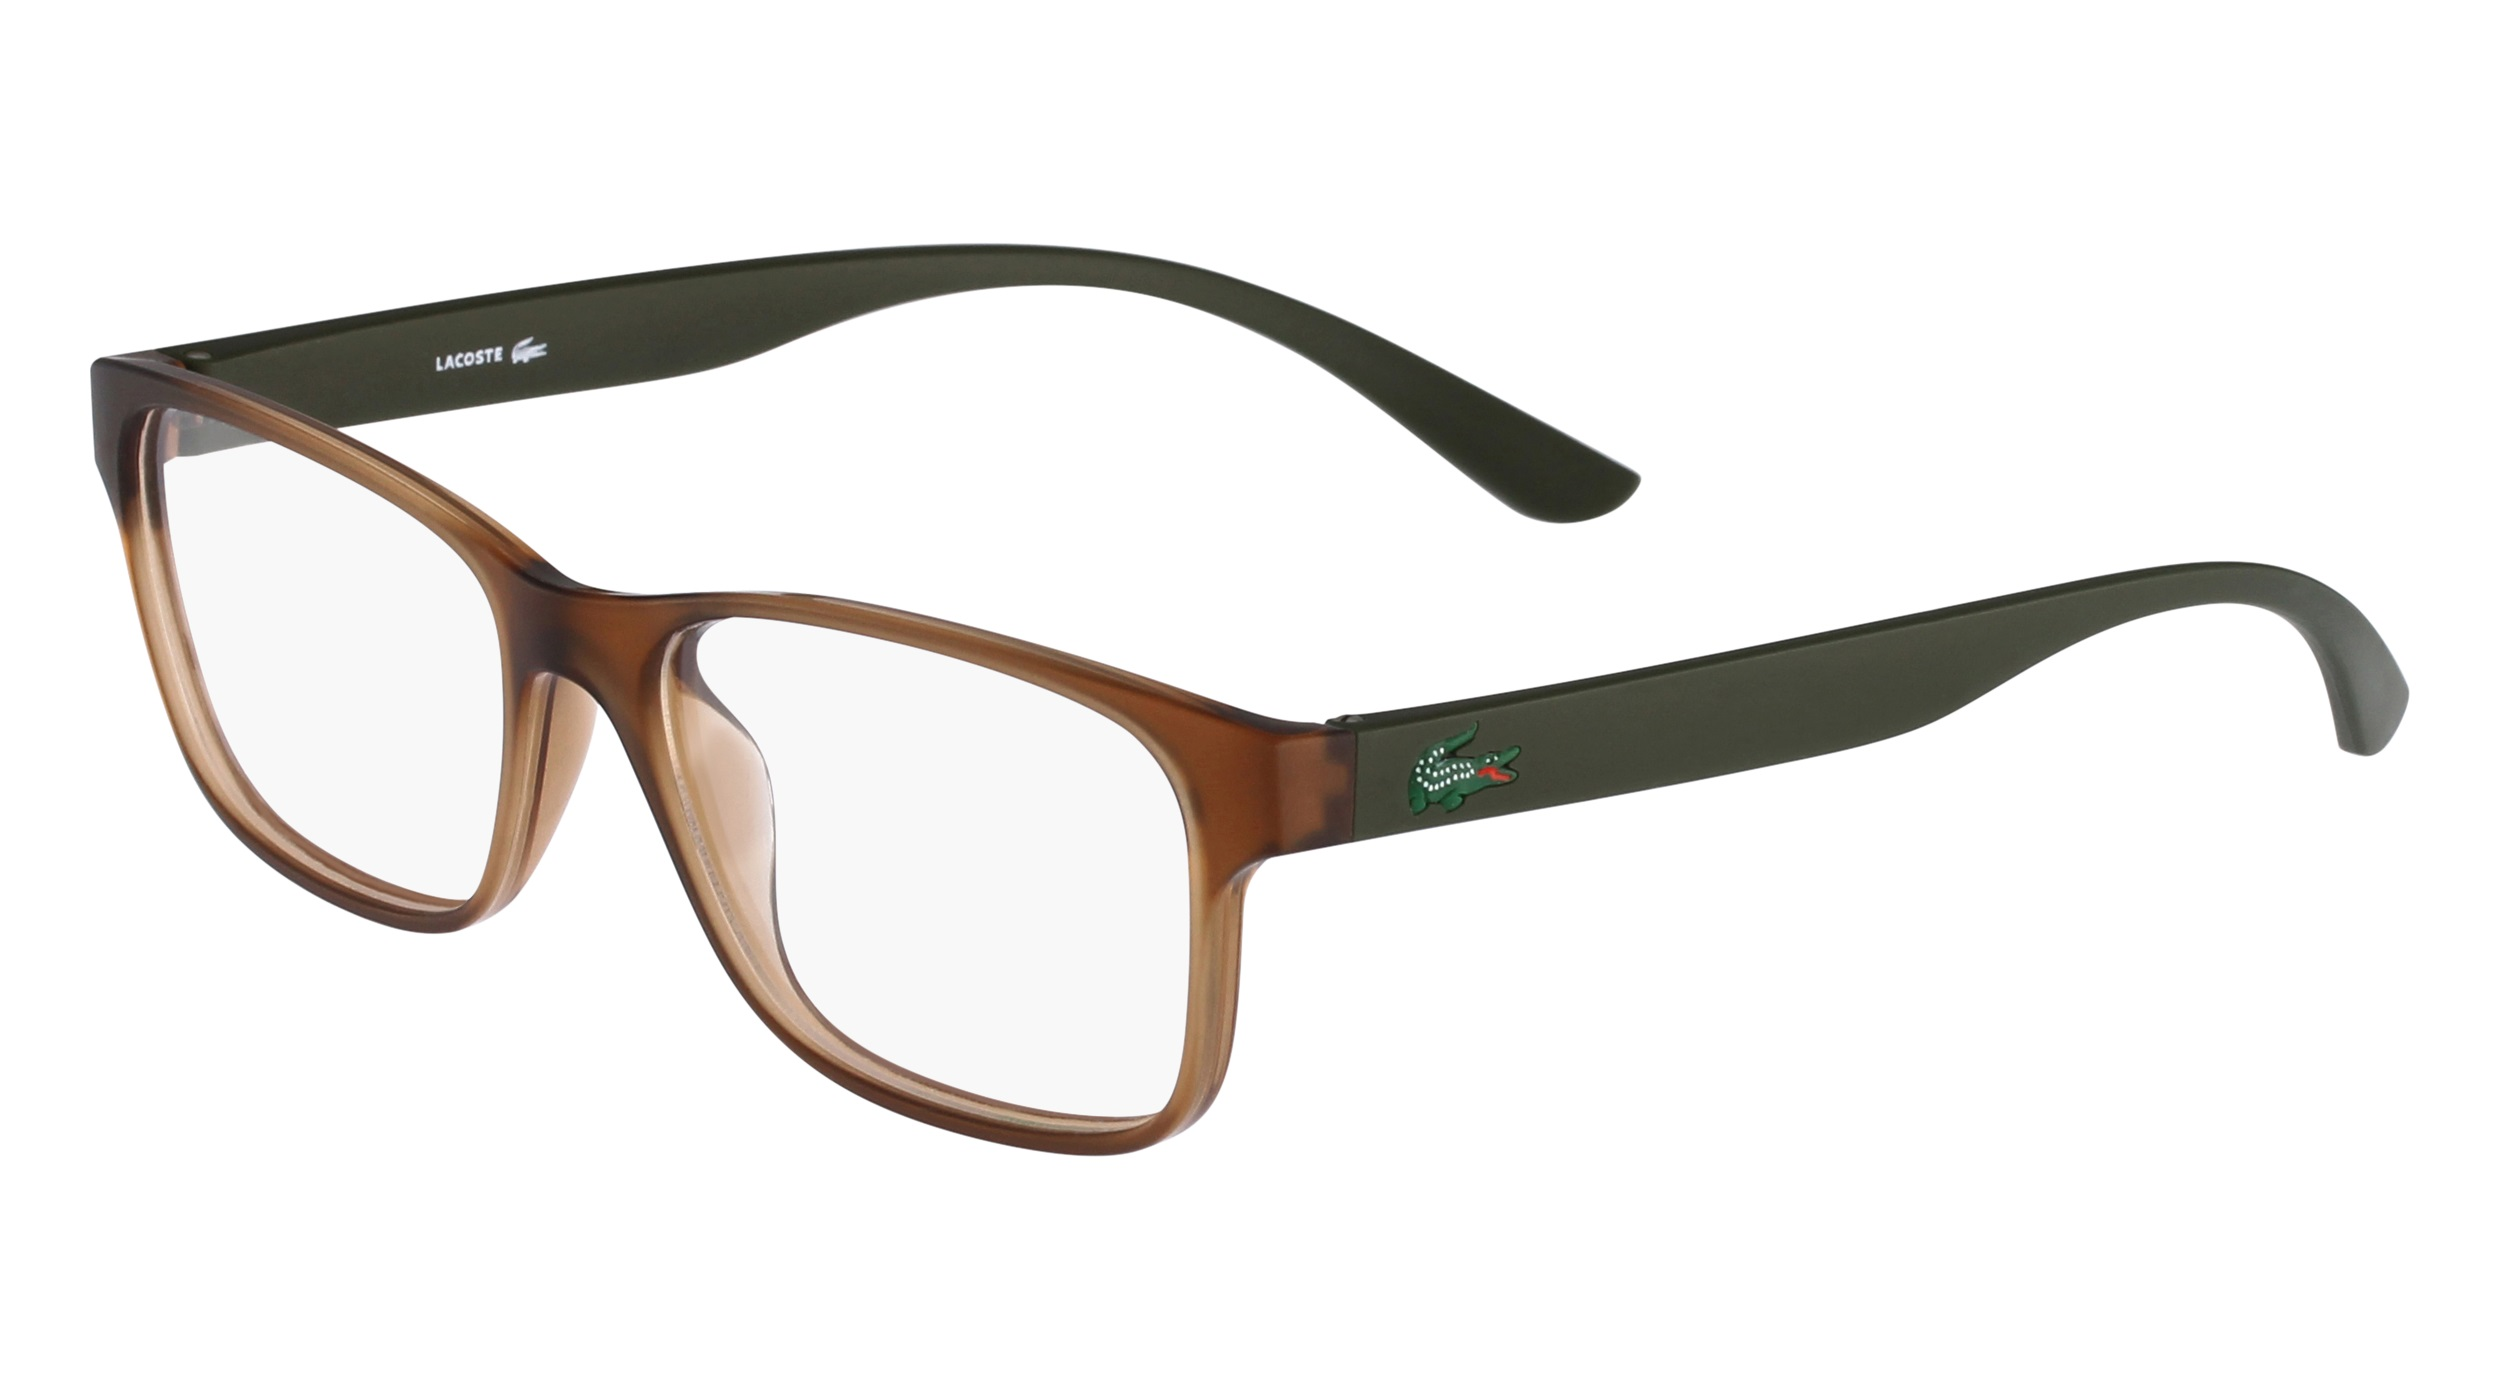 a5ed10fdd94b Eyewear for Kids - Boy Lacoste - Optiwow